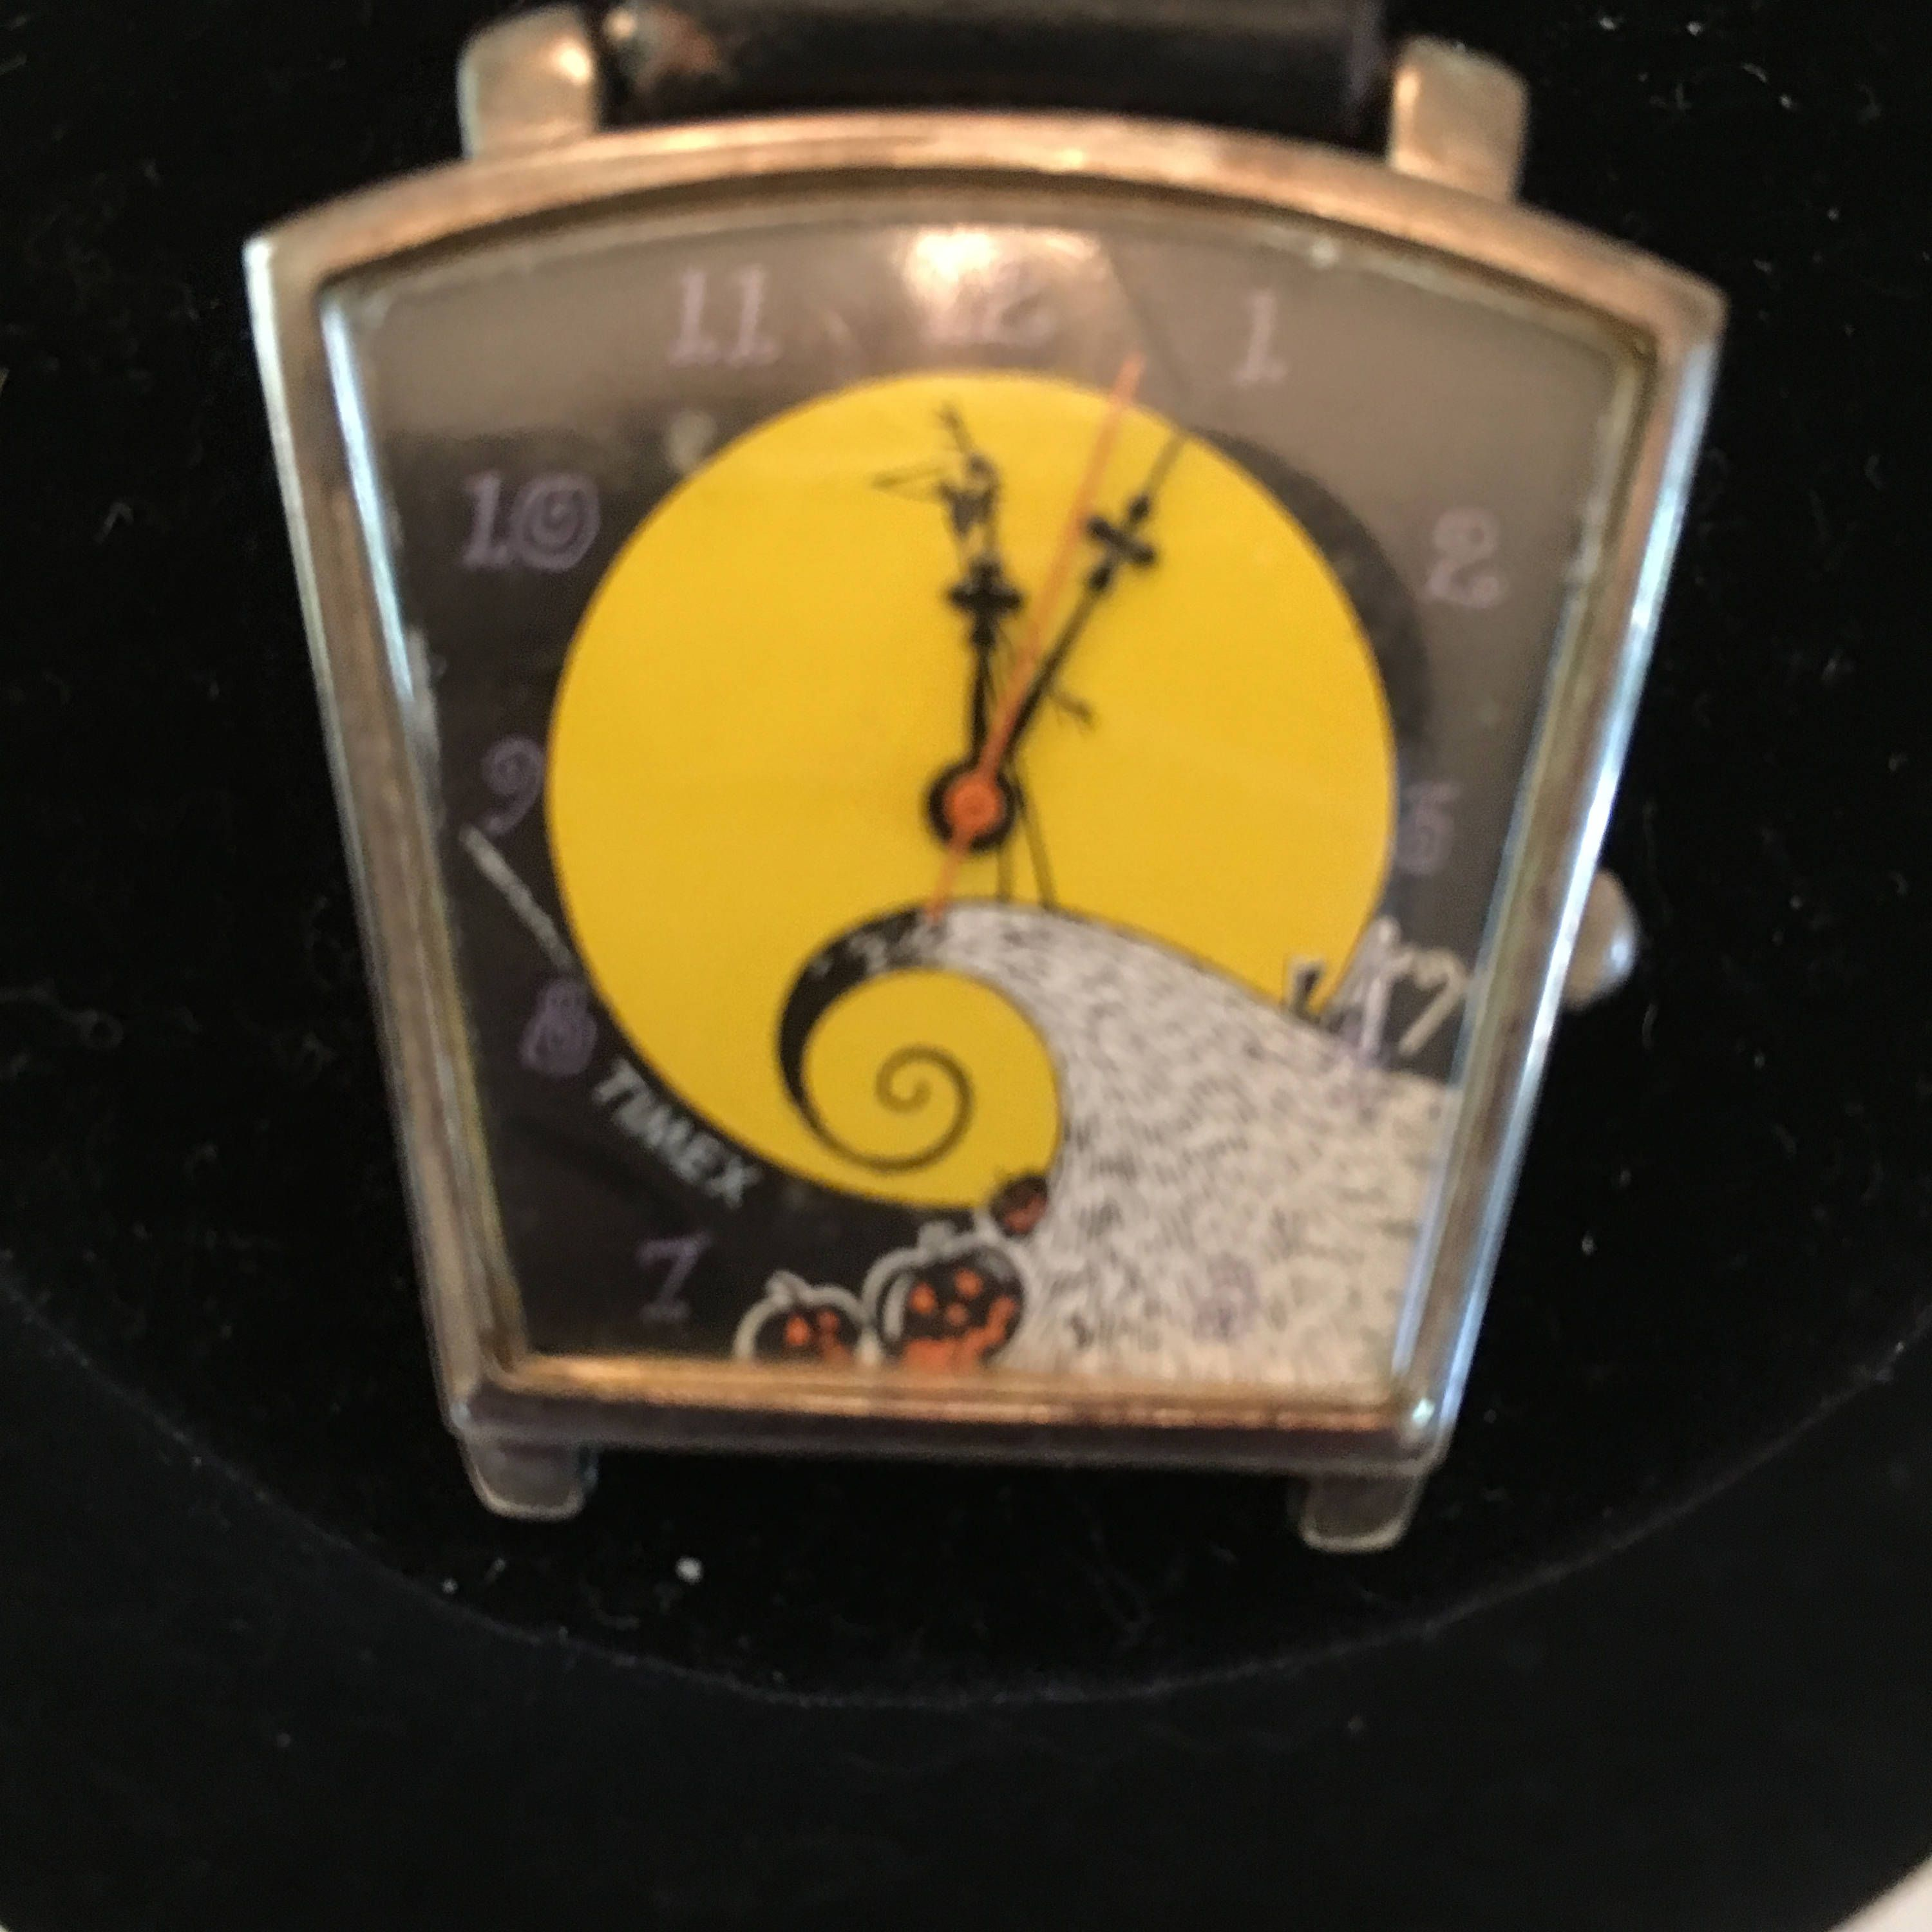 Touchstone Pictures Nightmare Before Christmas Watch by Timex ...